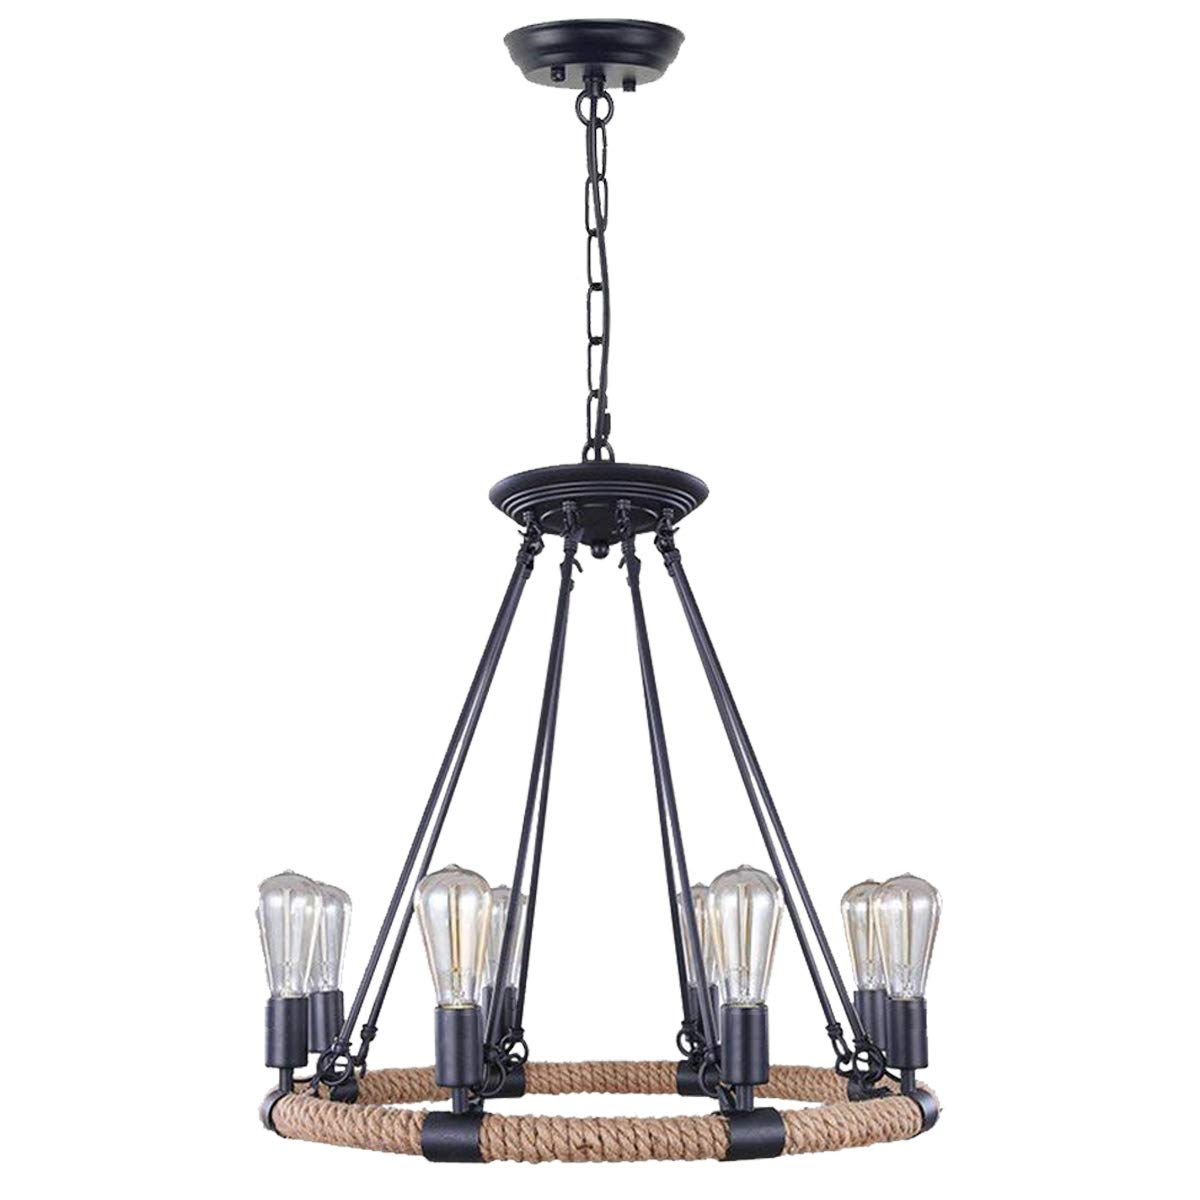 Lightingpro vintage 8 light hemp rope chandeliers rustic kitchen pendant lighting matte black finish